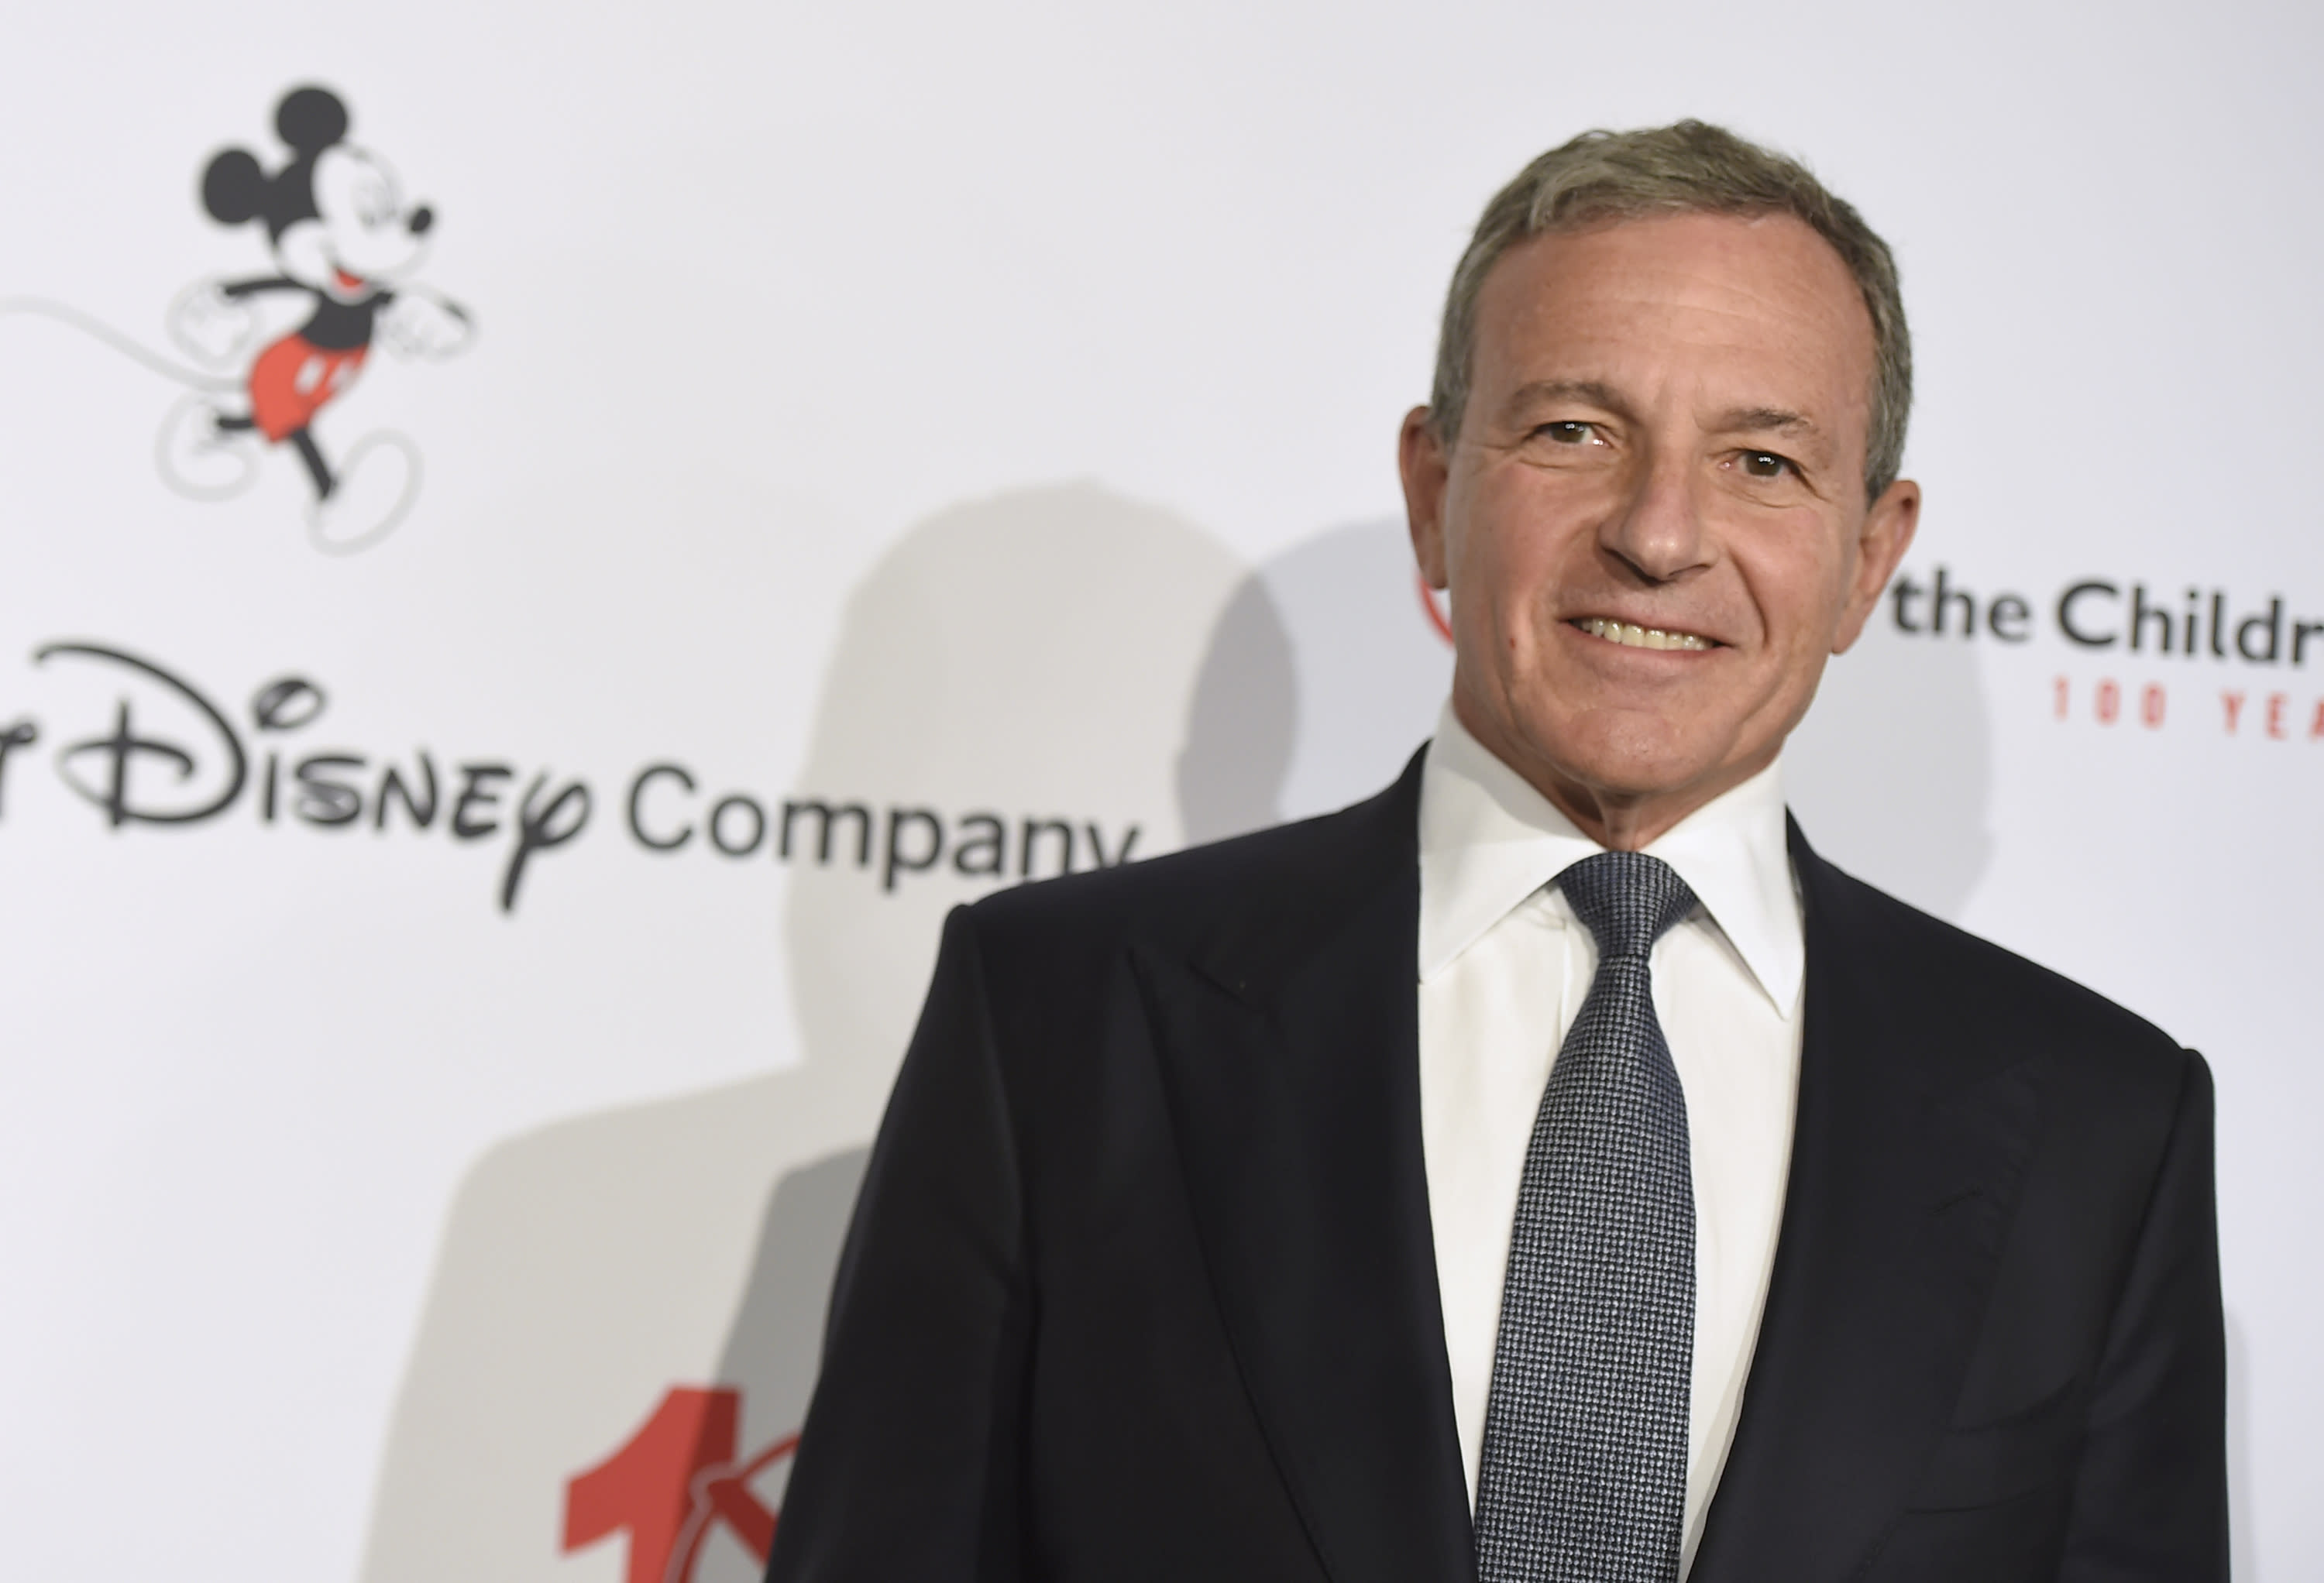 Disney CEO Bob Iger hits back against Scorsese and Coppola 'bitching' about Marvel